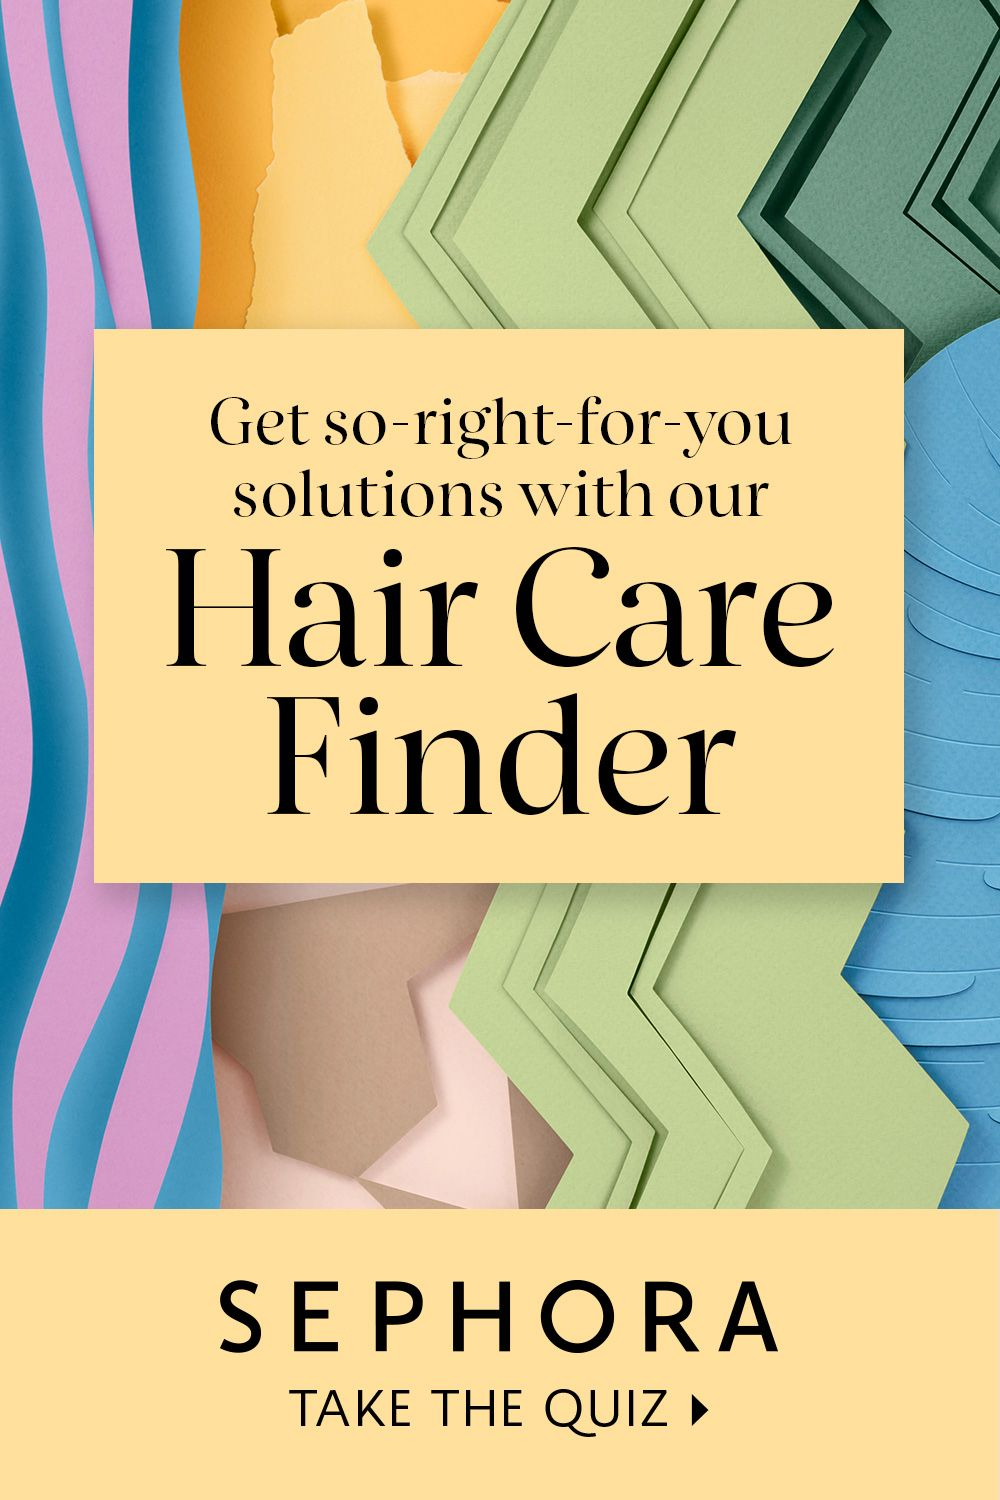 Hair Quiz – Can You Name 5 Hair Styles That Don't Make You Look Like a Graduate?